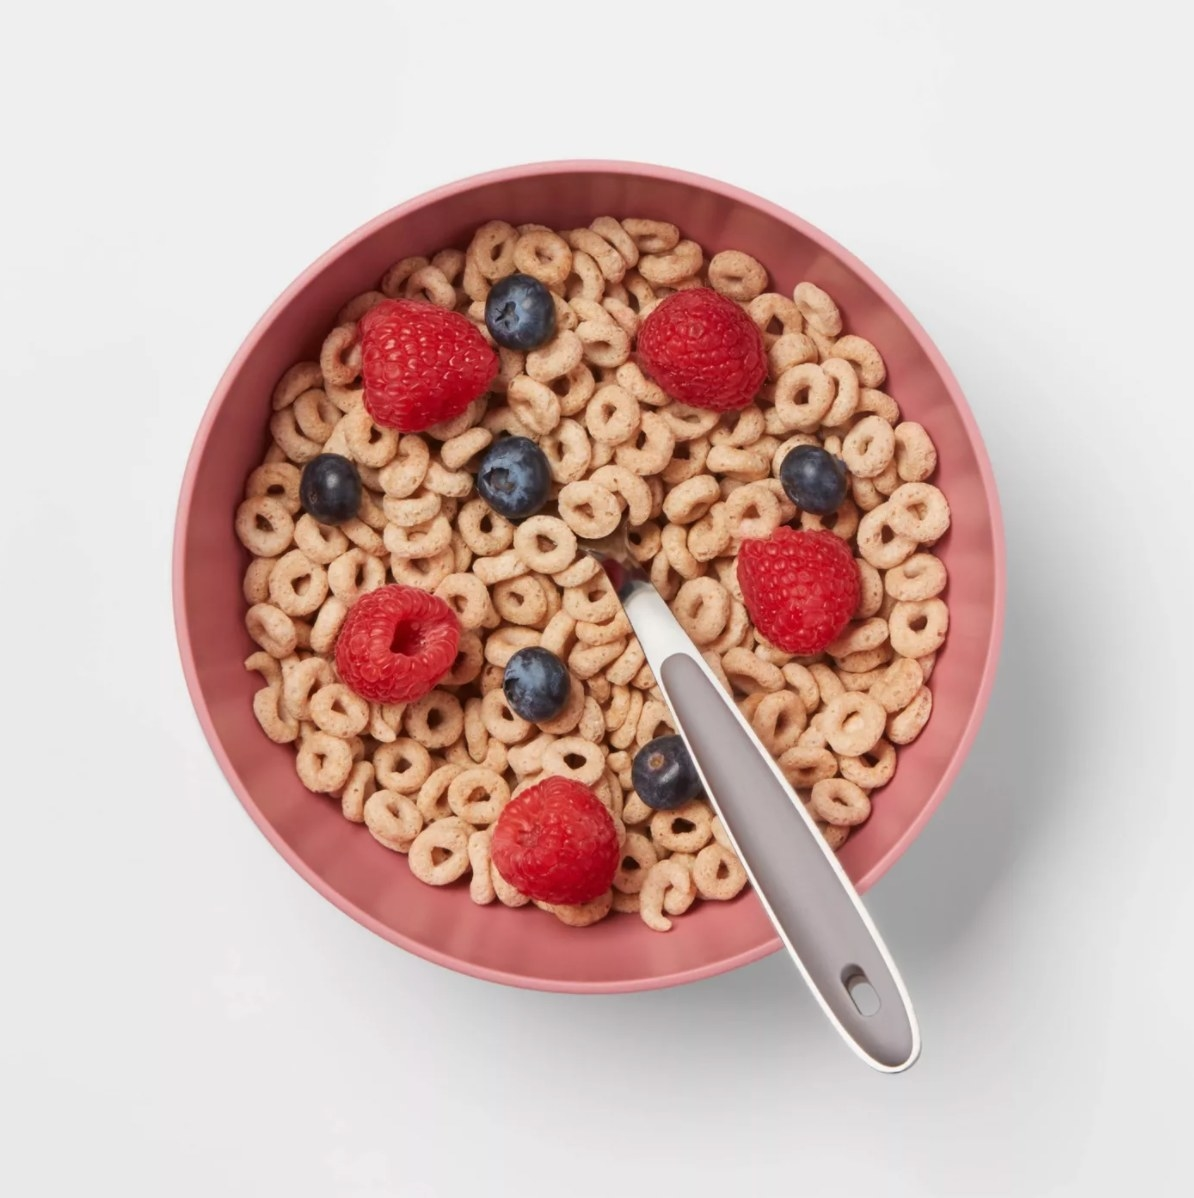 The cereal bowl in coral holding Cheerios with raspberries and blueberries